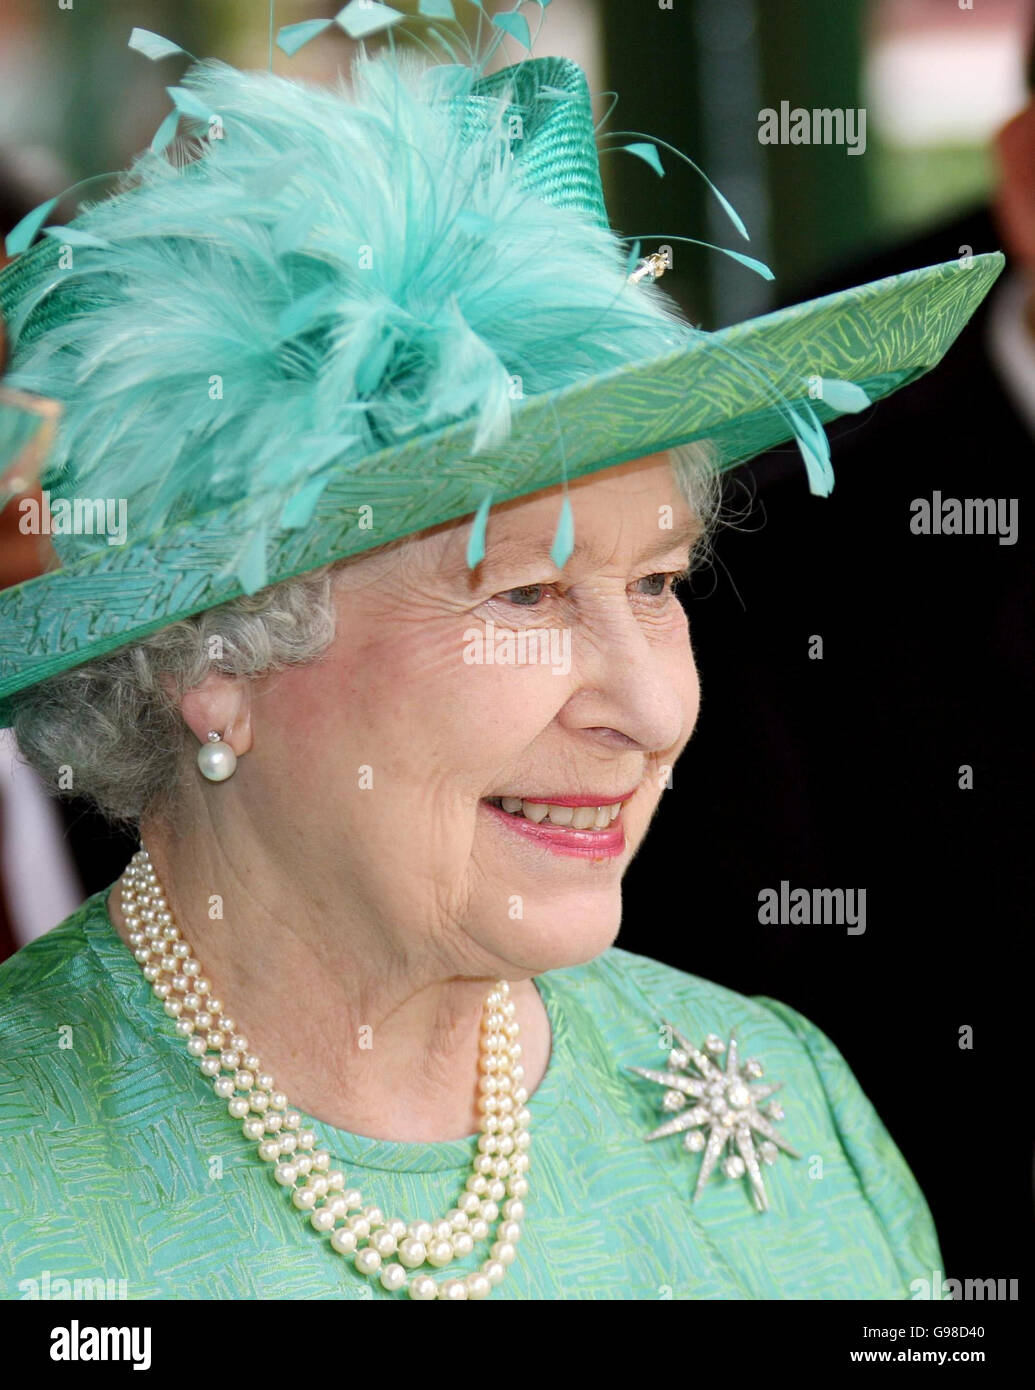 Royalty - Queen Elizabeth II Visit to Singapore - Stock Image